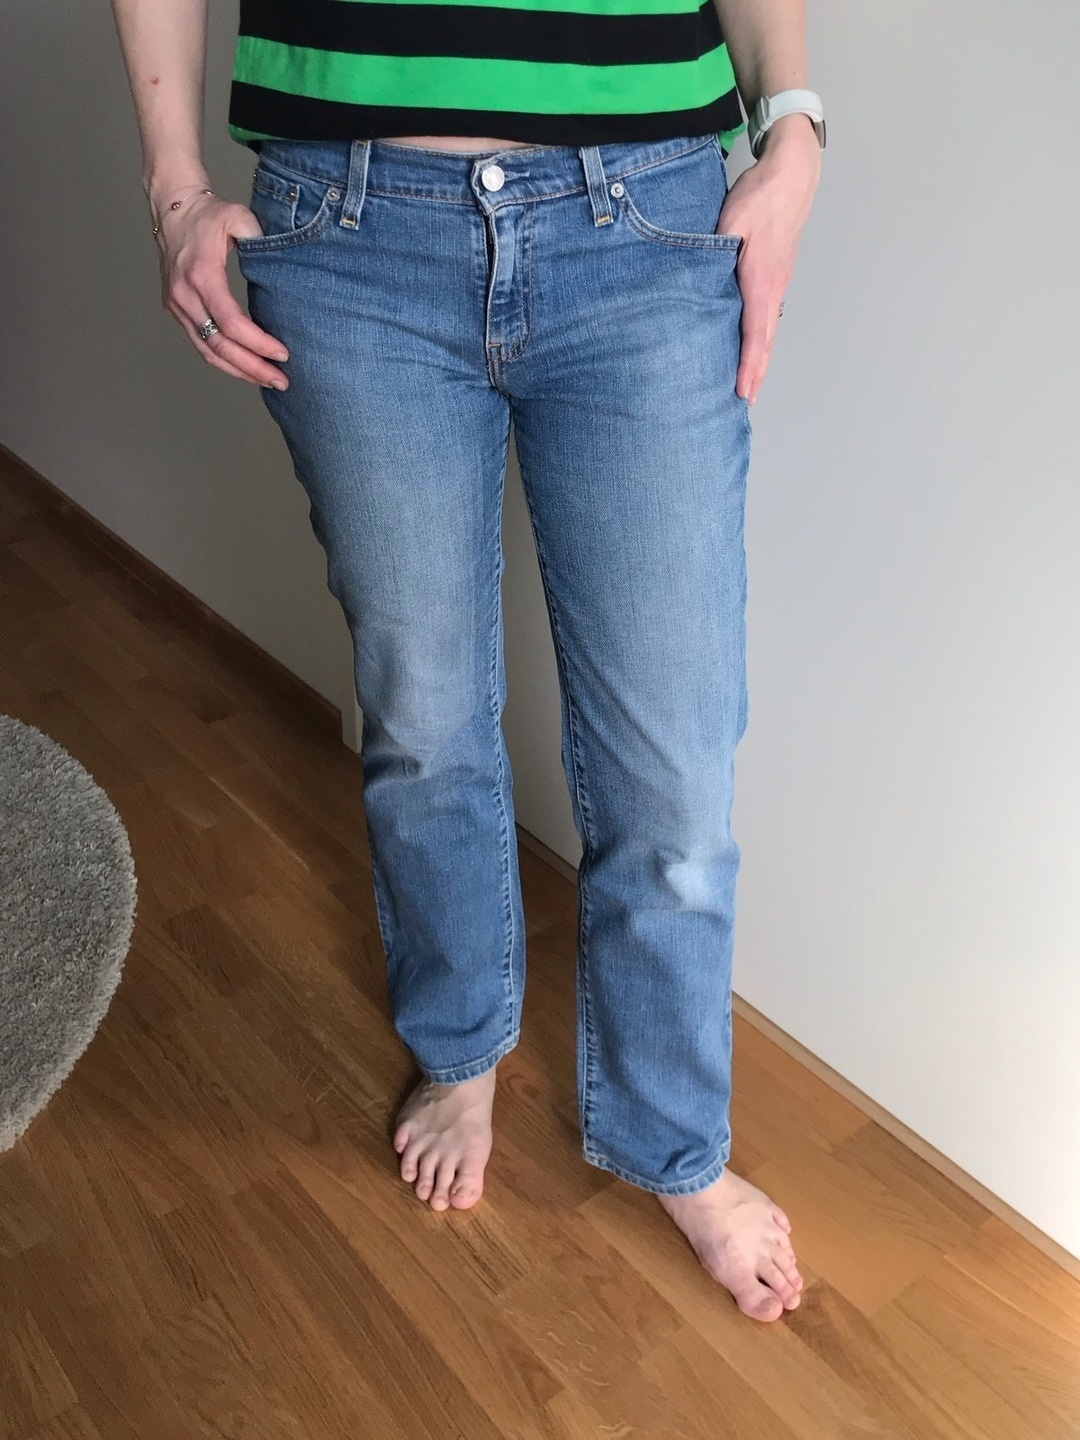 Damers bukser og jeans - LEVI'S photo 2